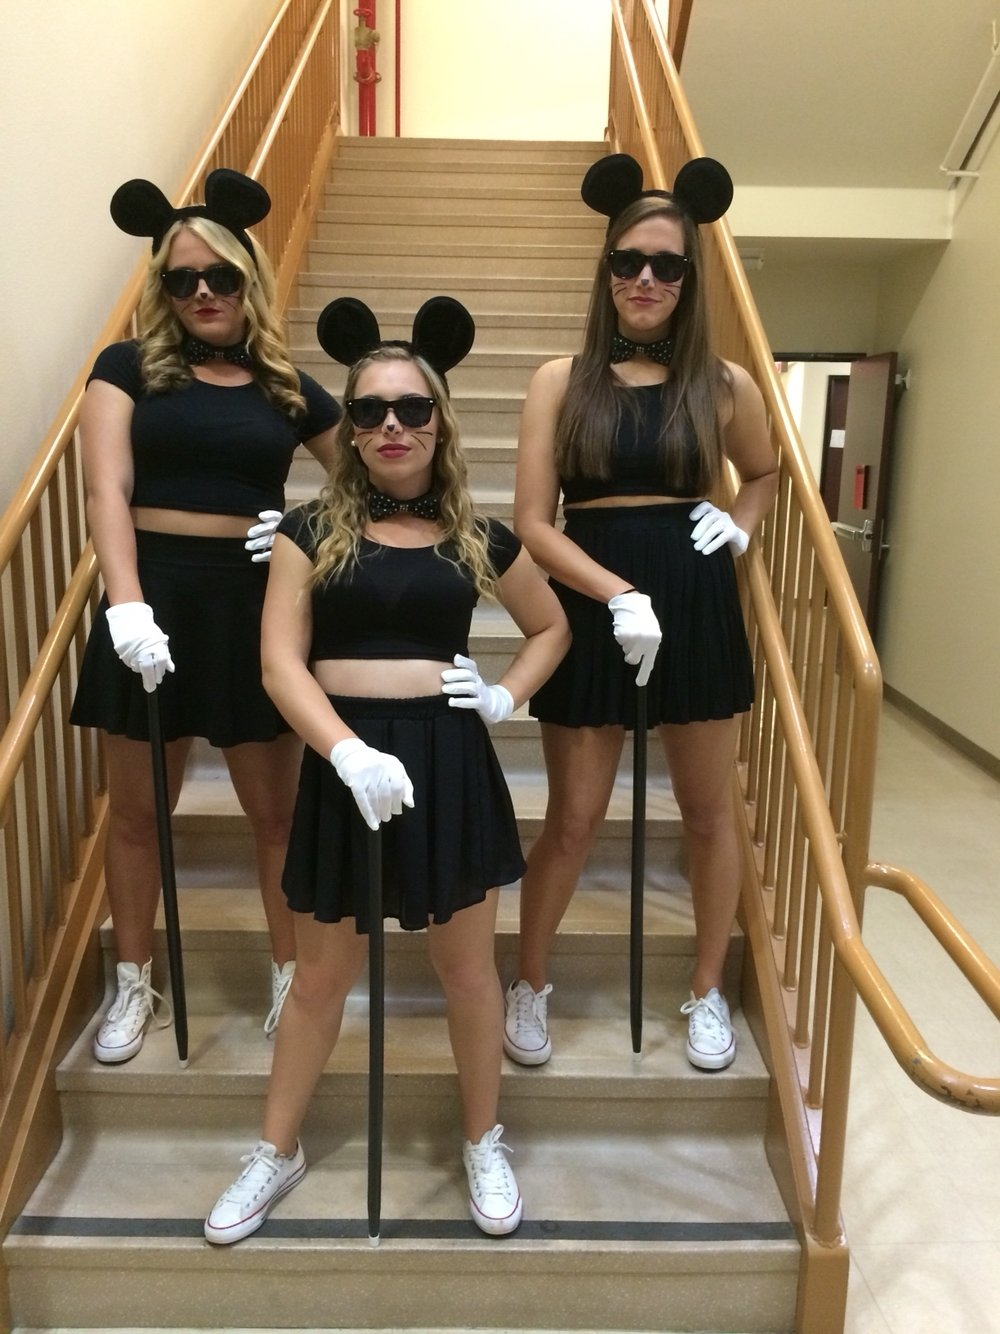 10 stylish 3 people halloween costume ideas think i might do this with my friends for